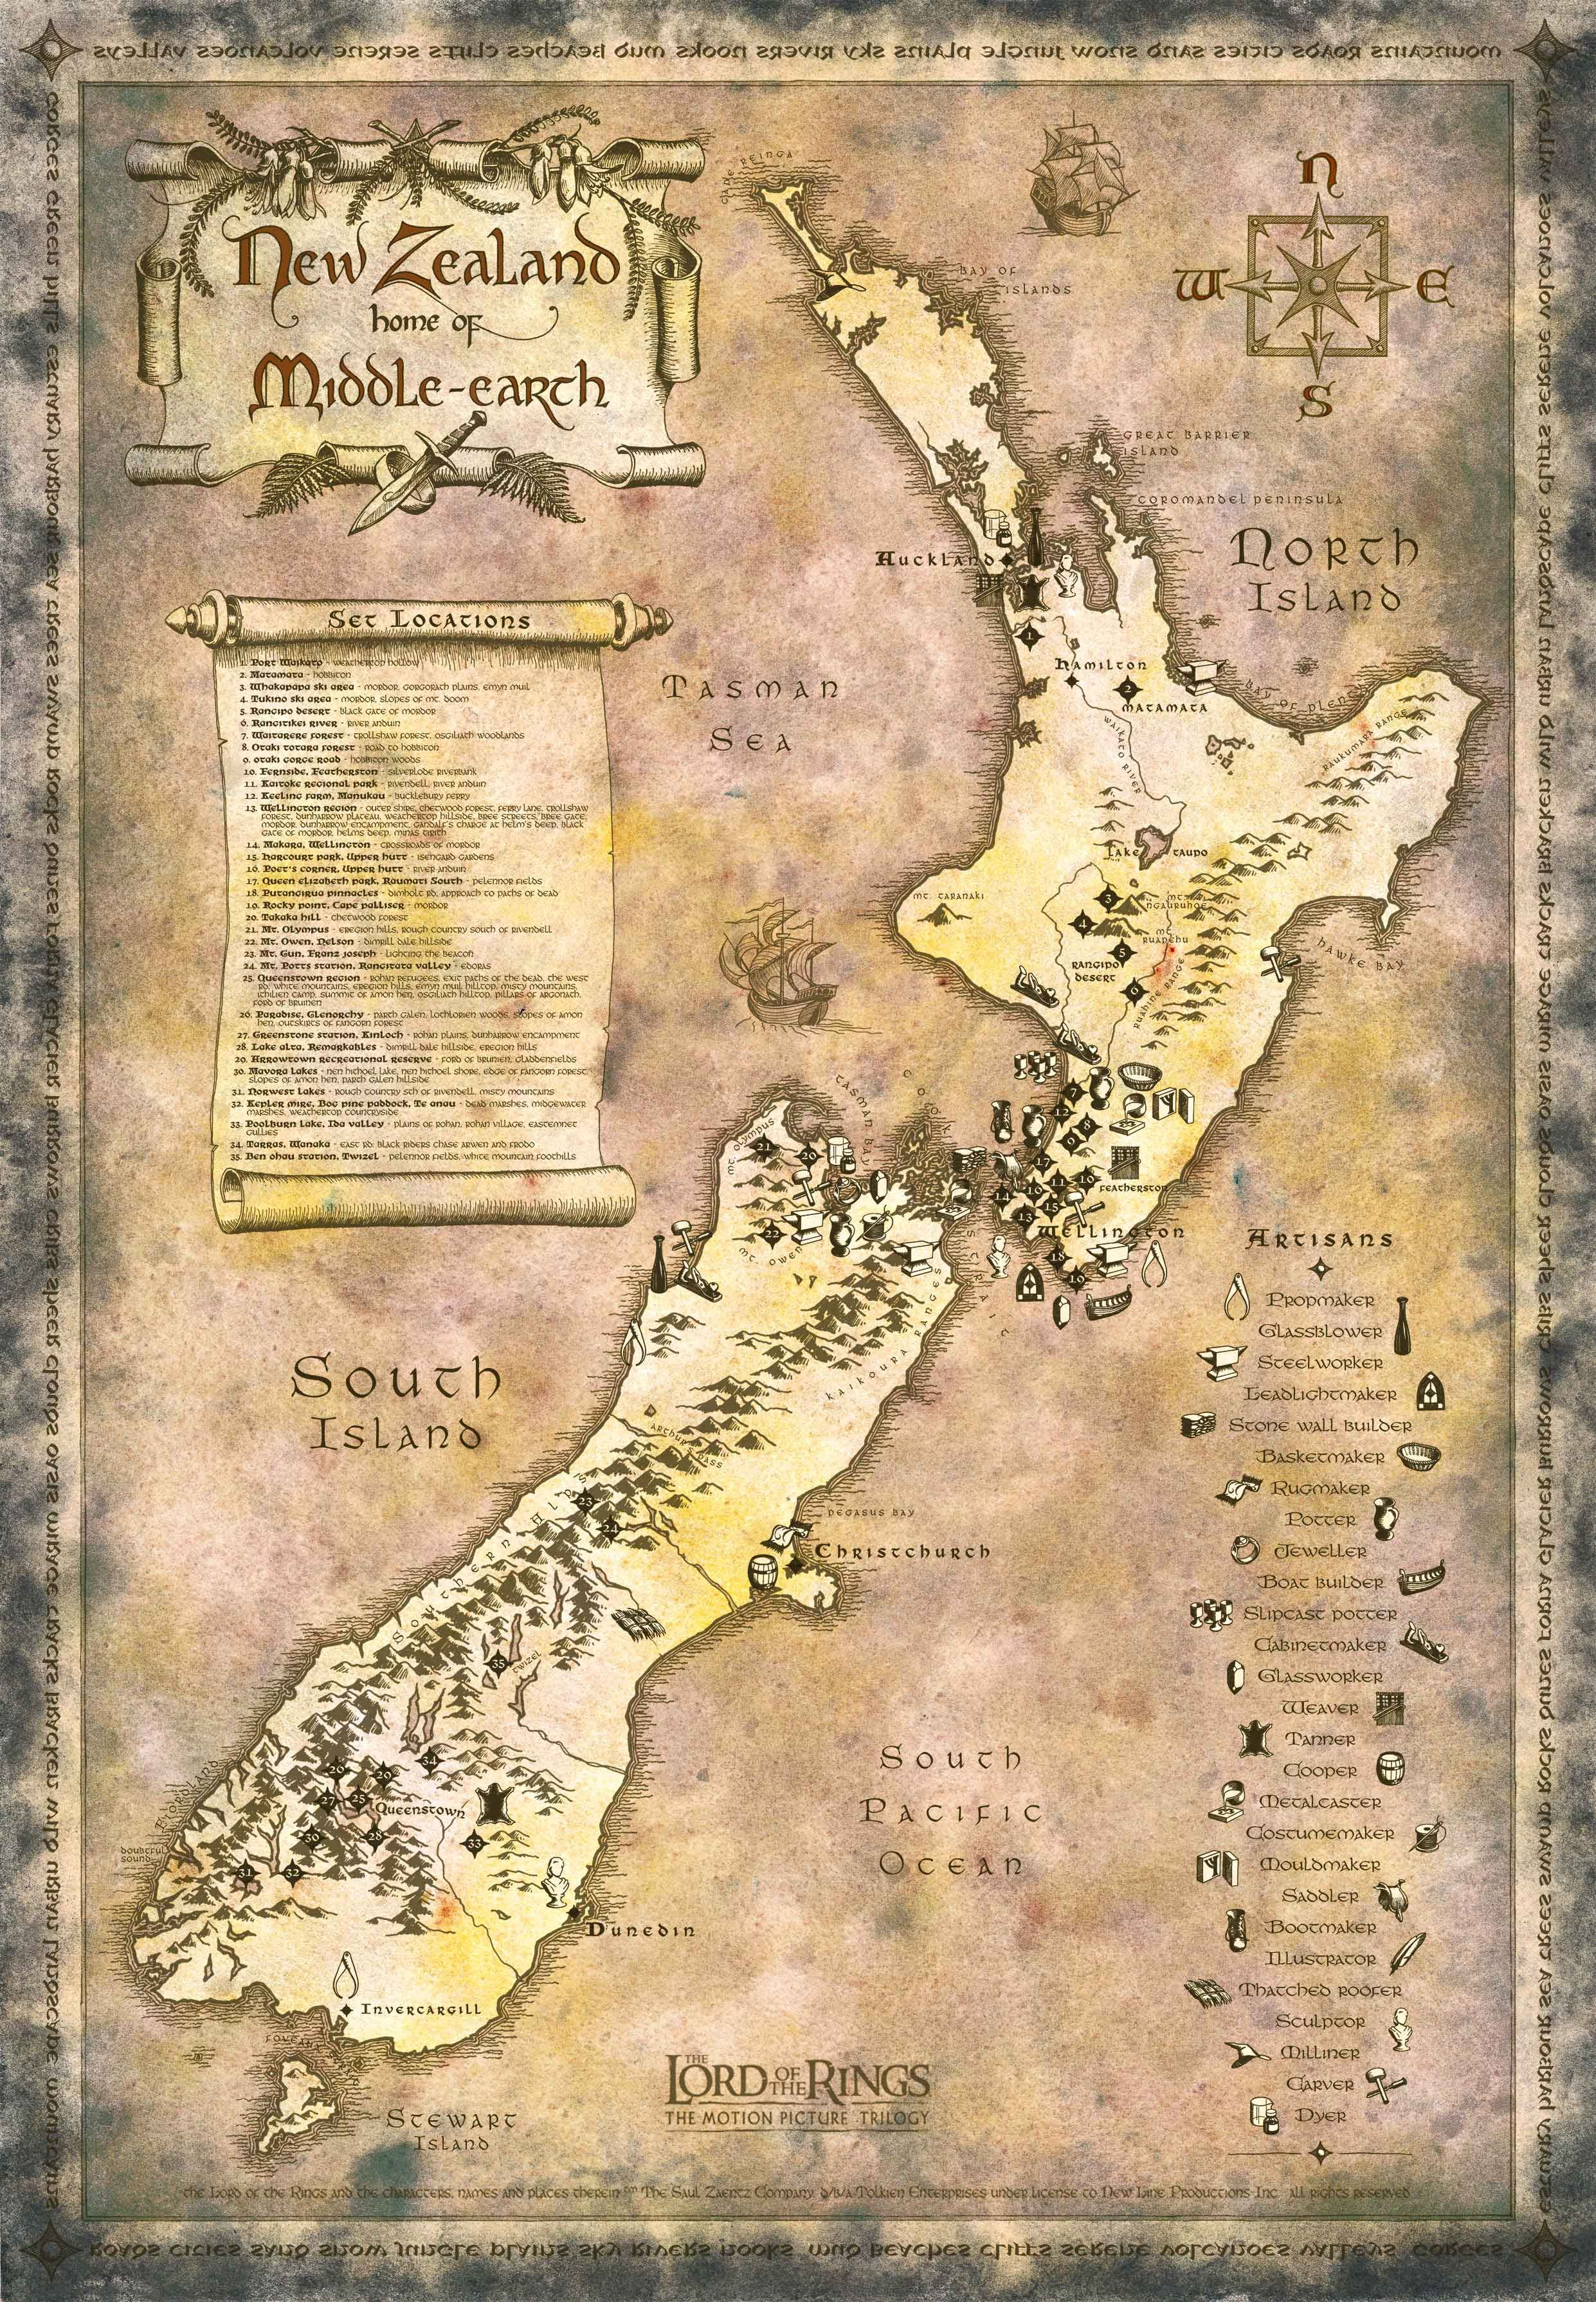 New Zealand Map LOTR Style Contains Detailed Set Locations For - Chicago map ring